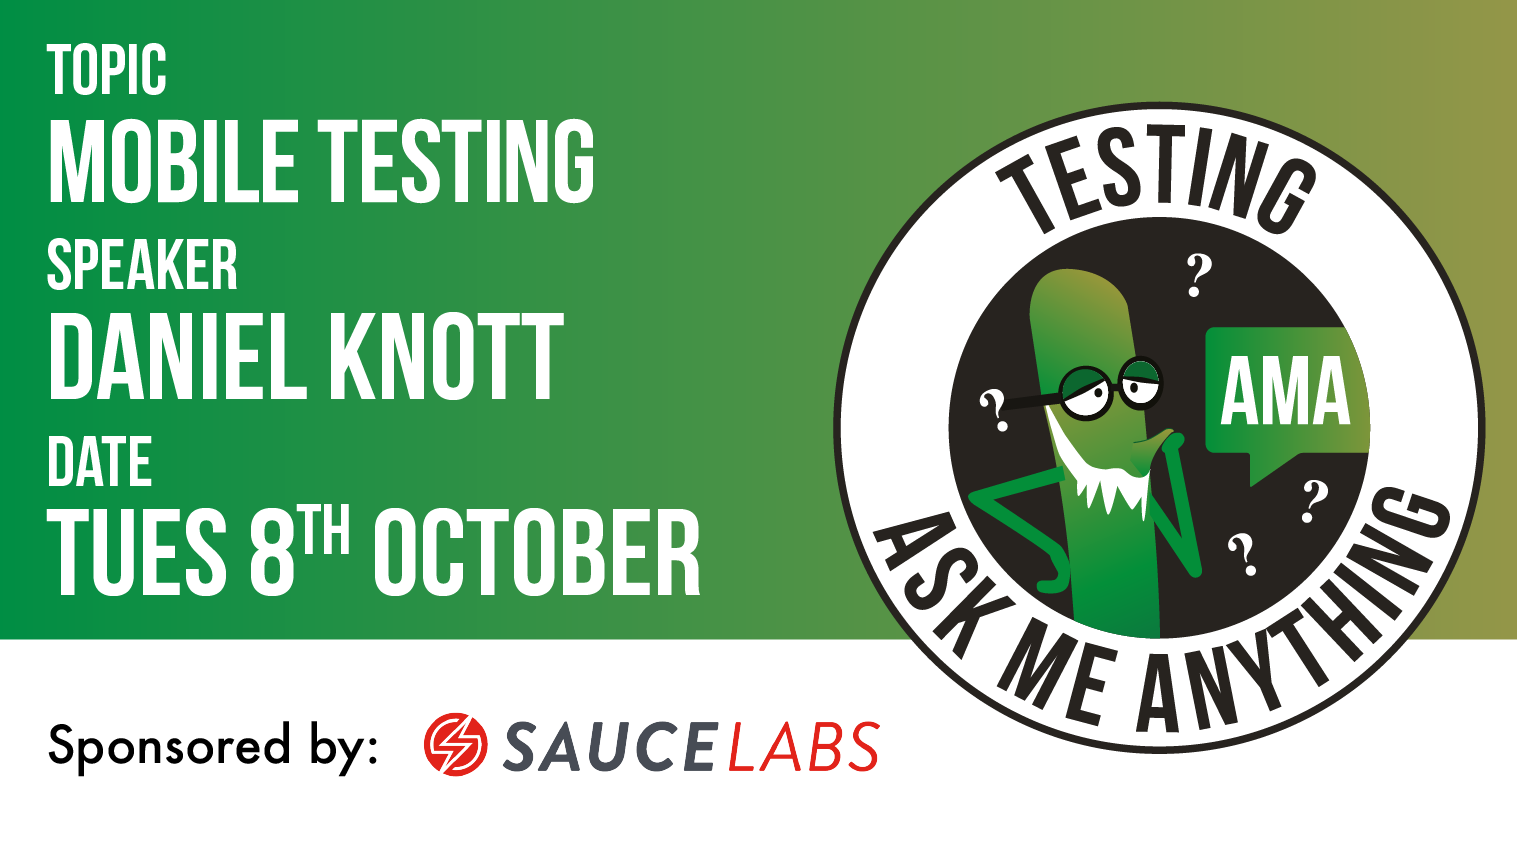 Testing Ask Me Anything - Mobile Testing - Daniel Knott